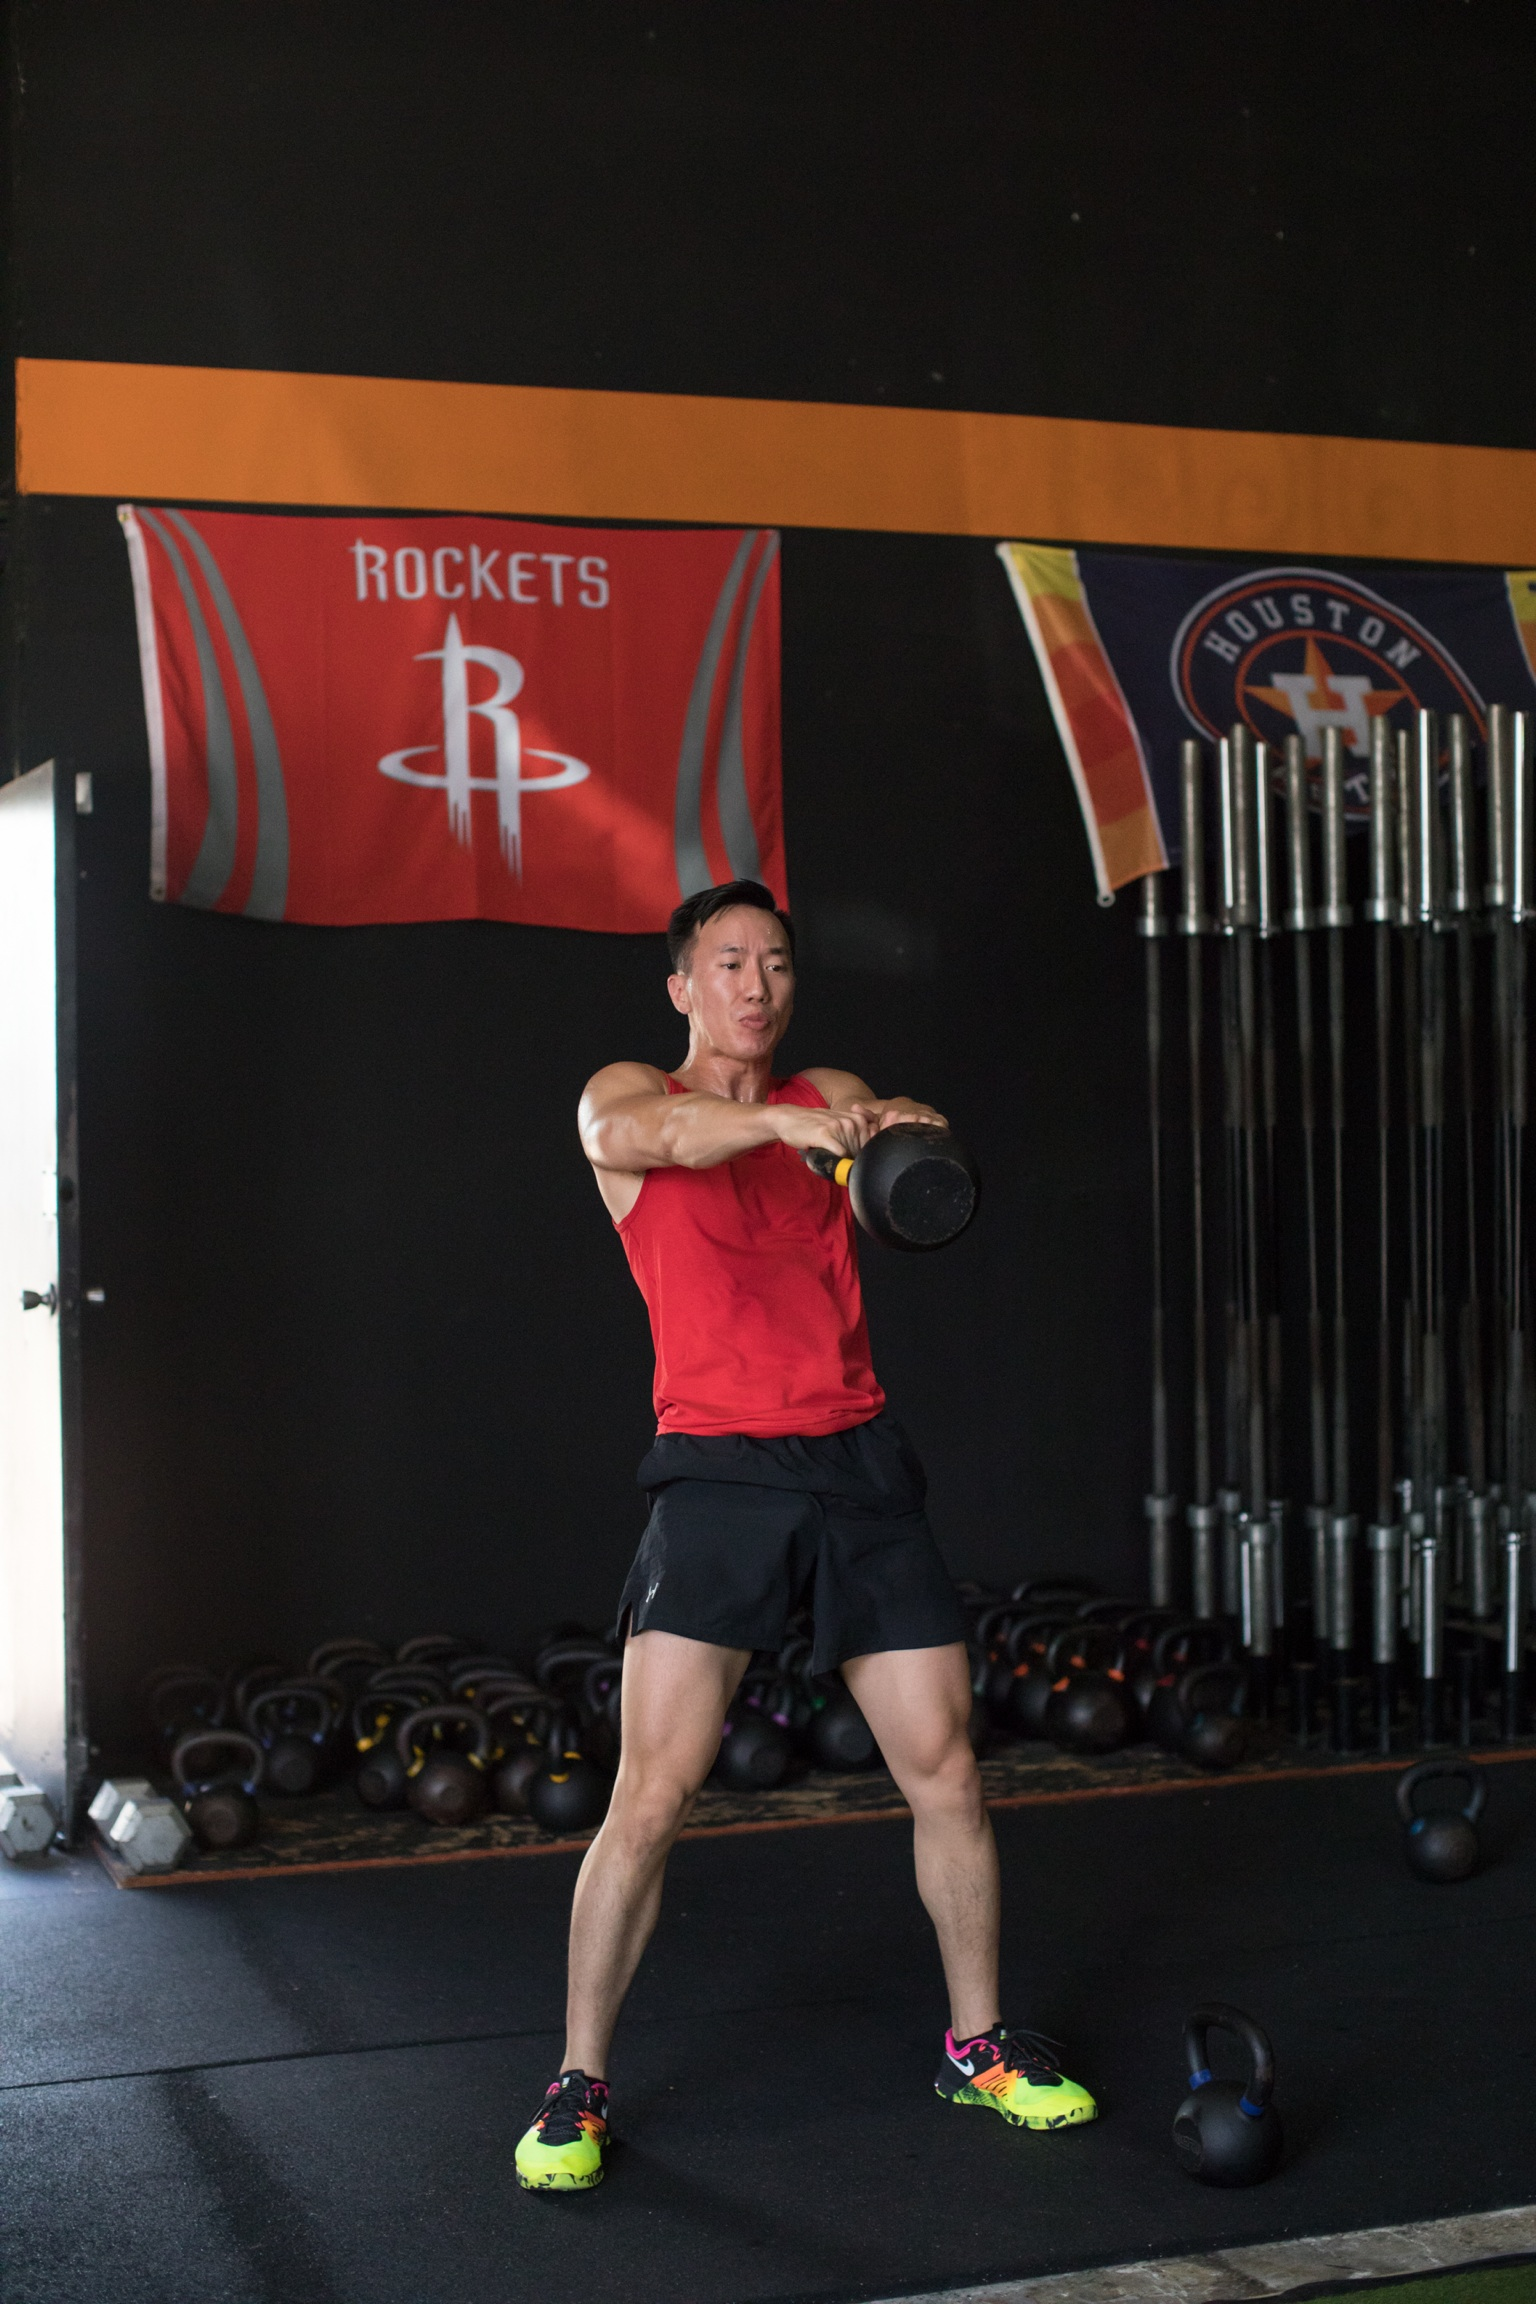 Duy is really serious with that kettlebell swing.